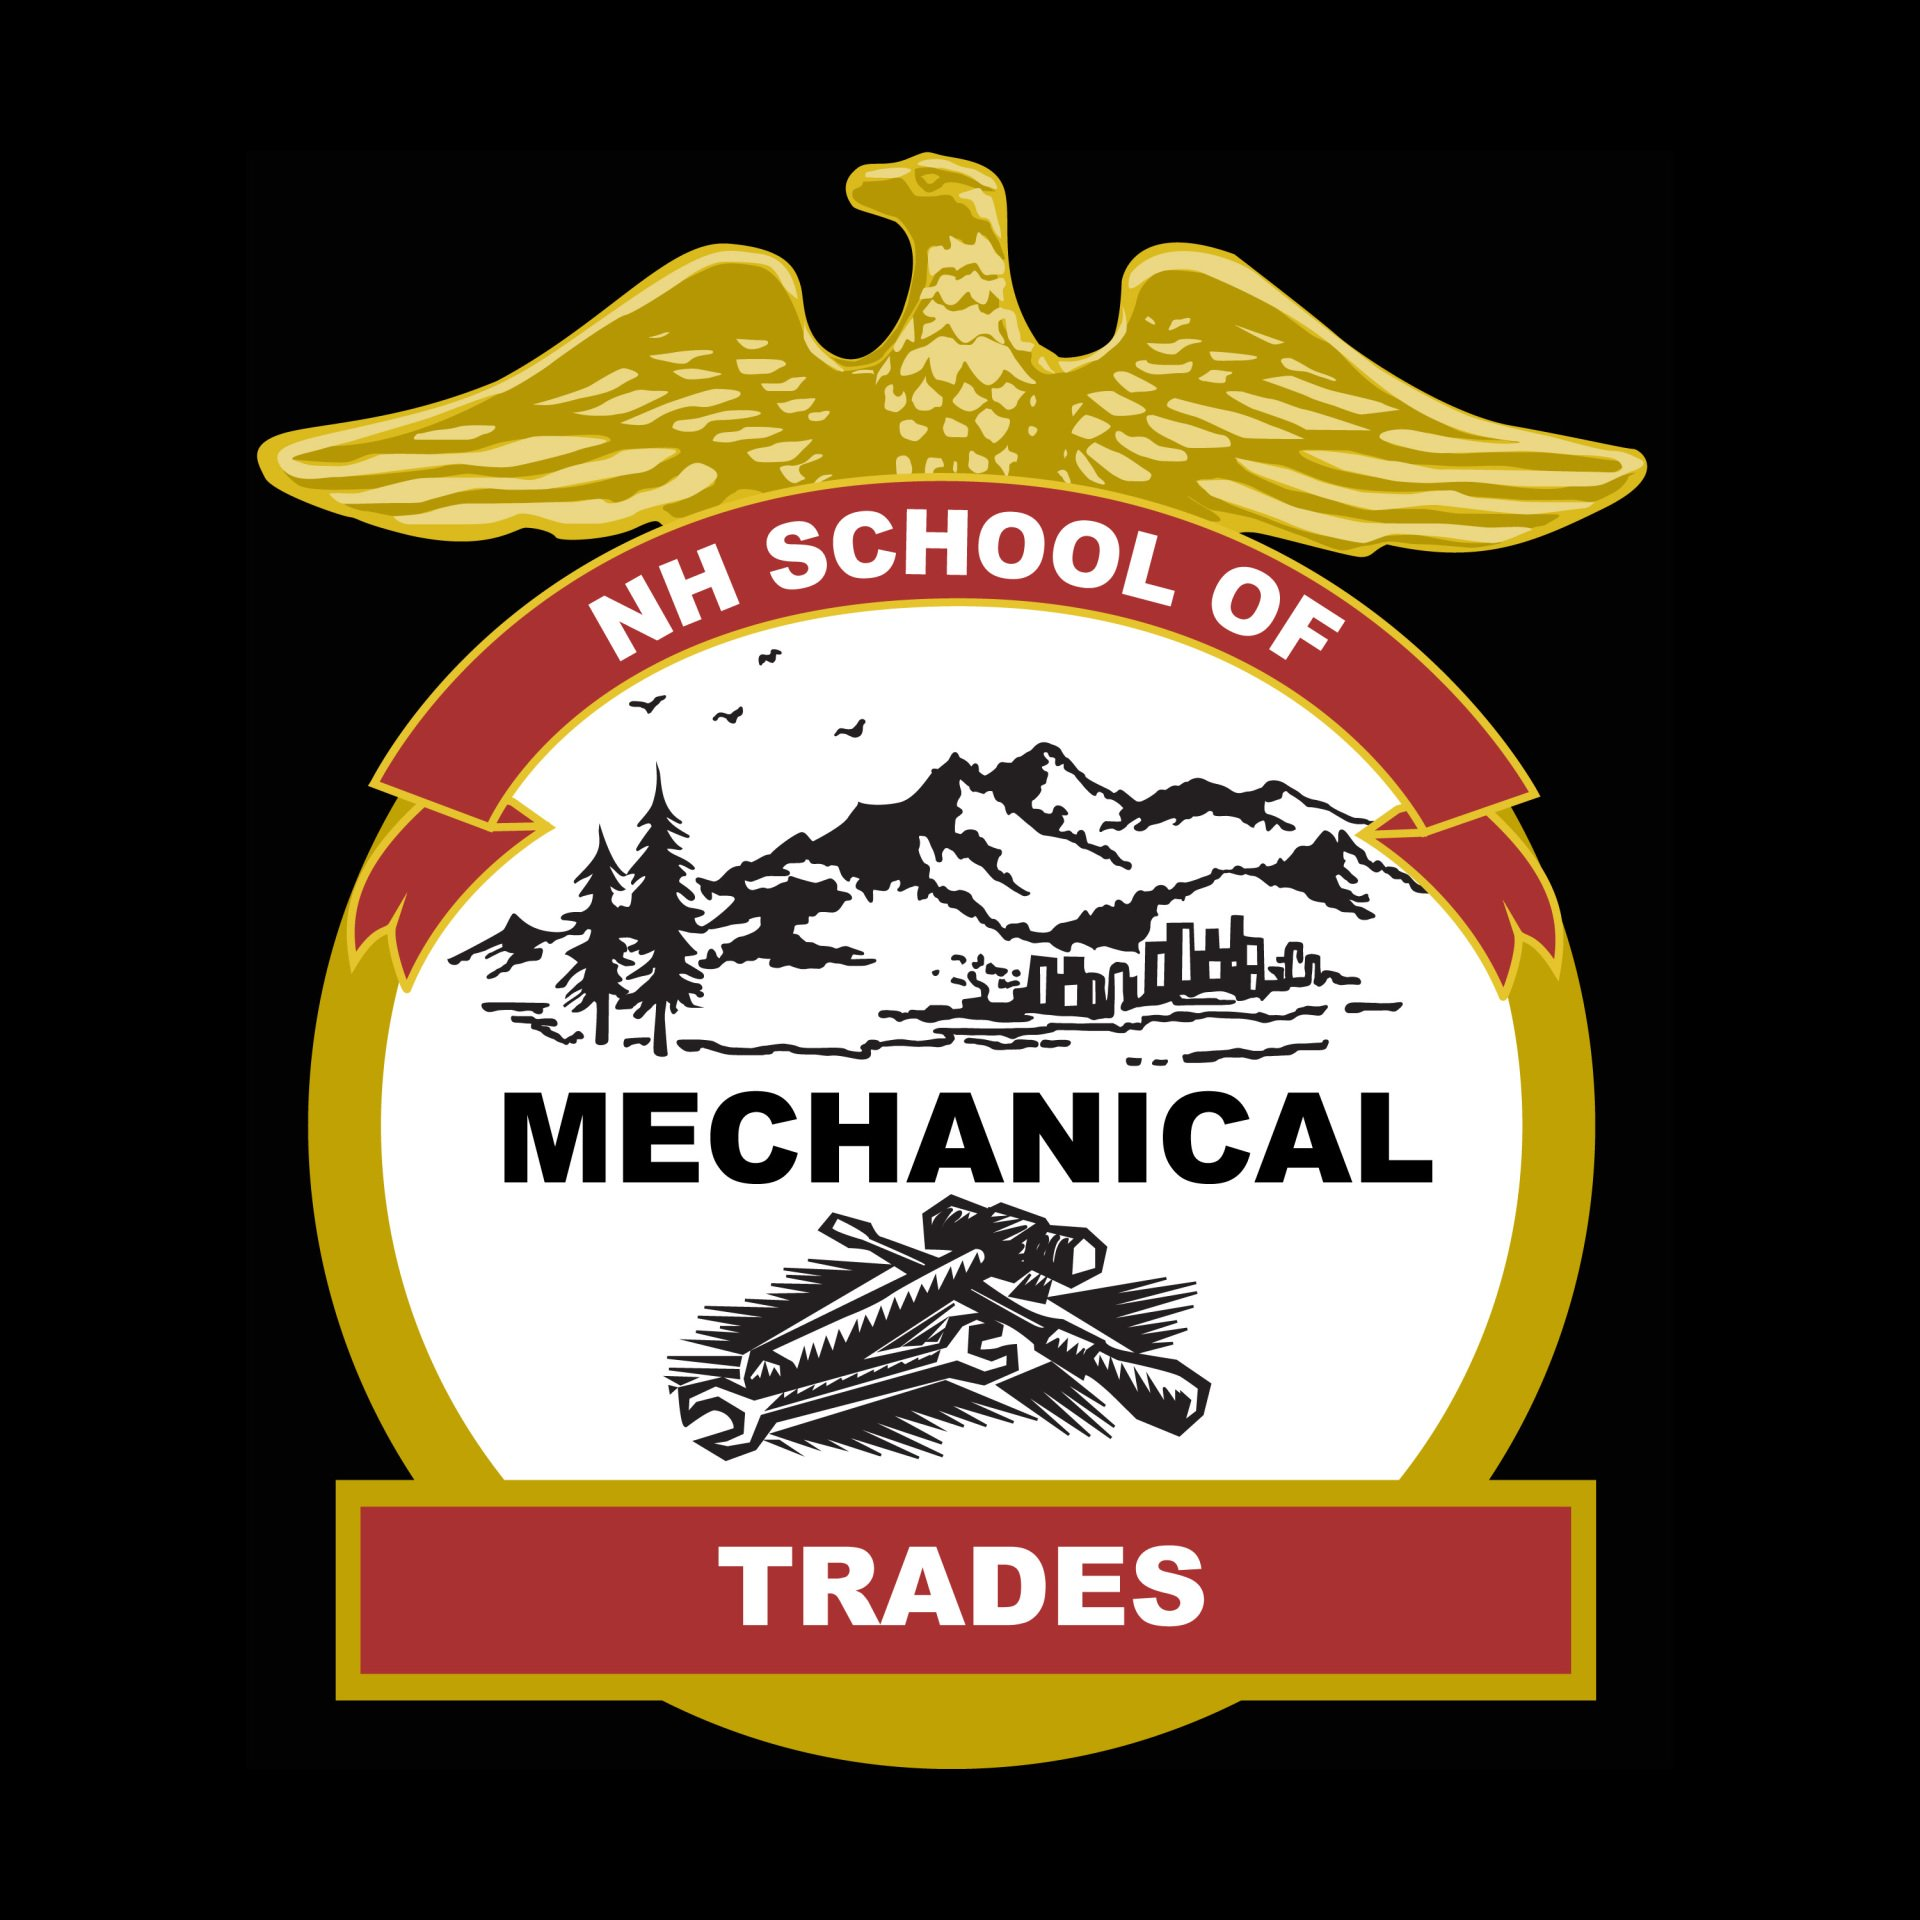 NH School of Mechanical Trades